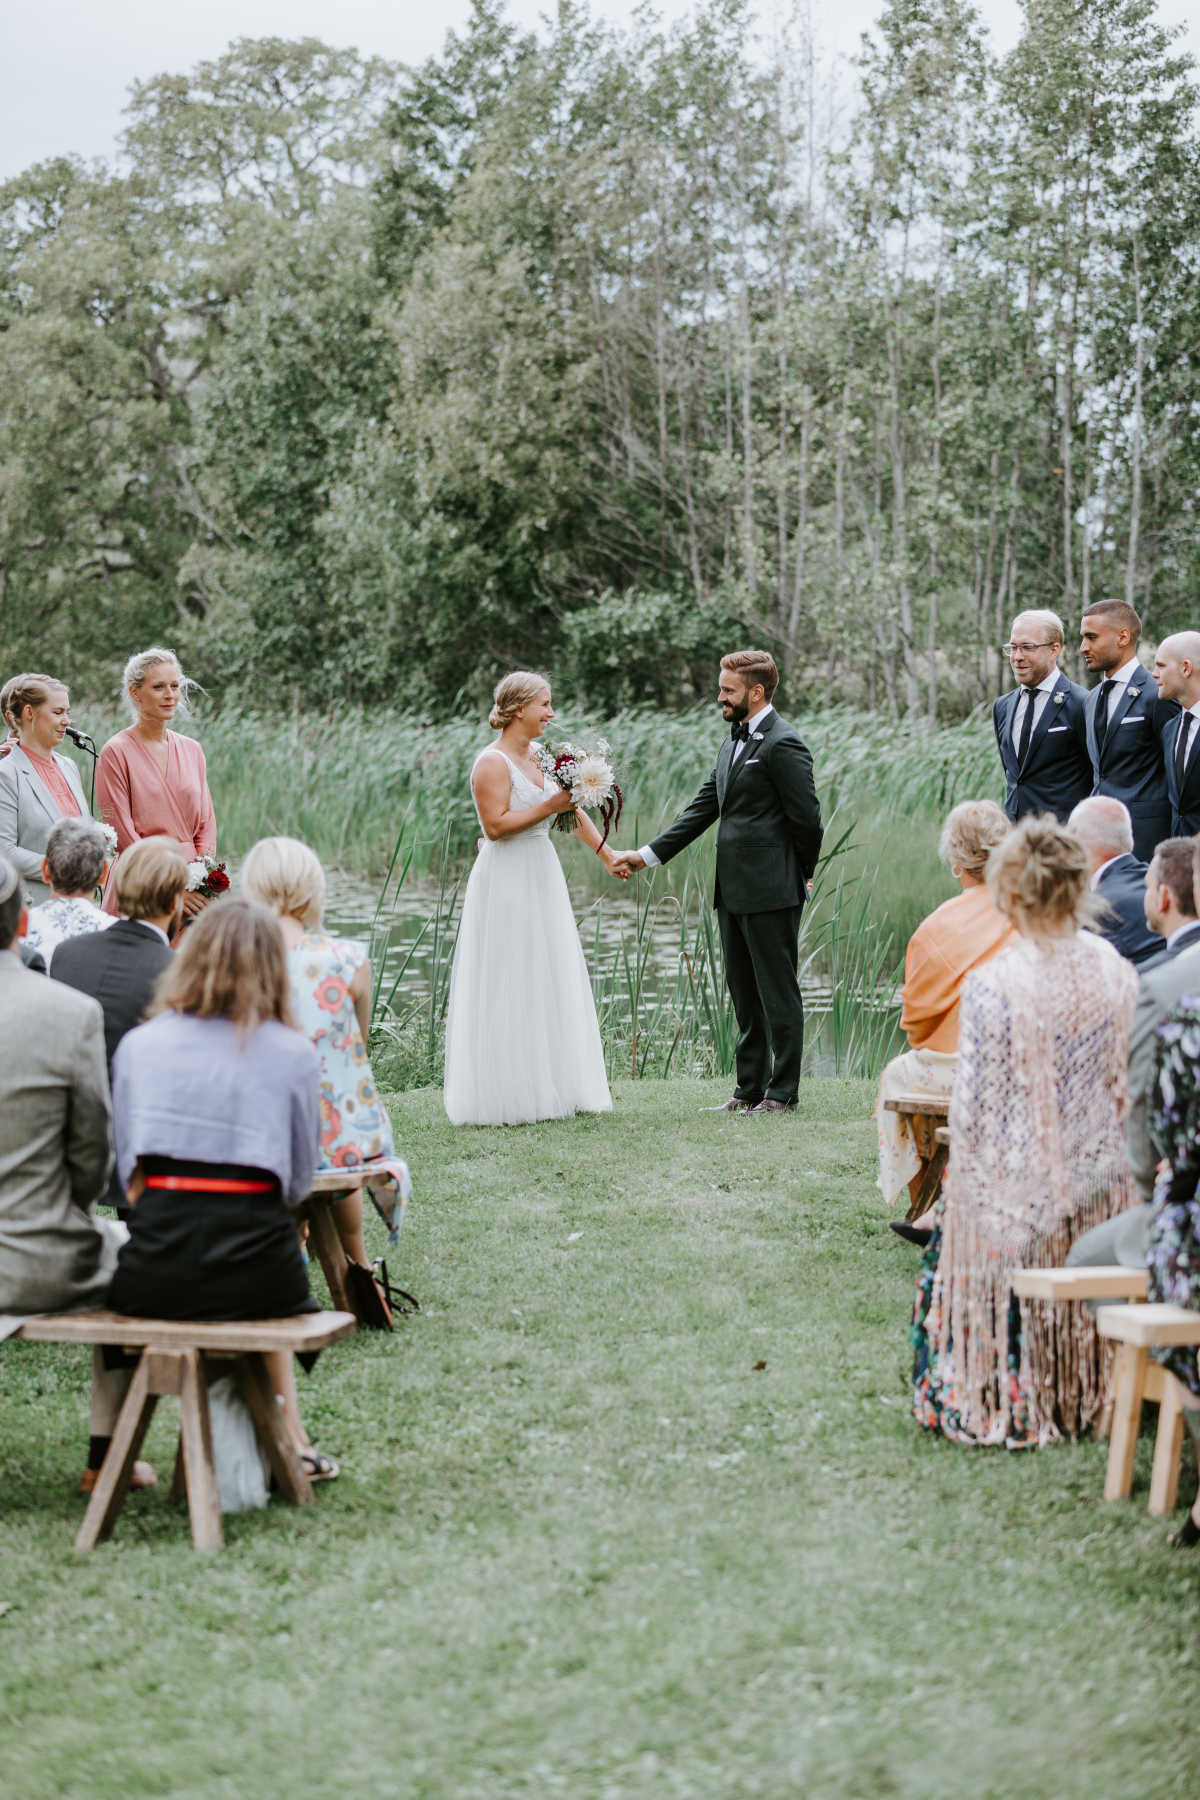 Photo of the reception. The brid and groom are standing in front of the seated guests. They are holding hands, smiling and looking at each other.